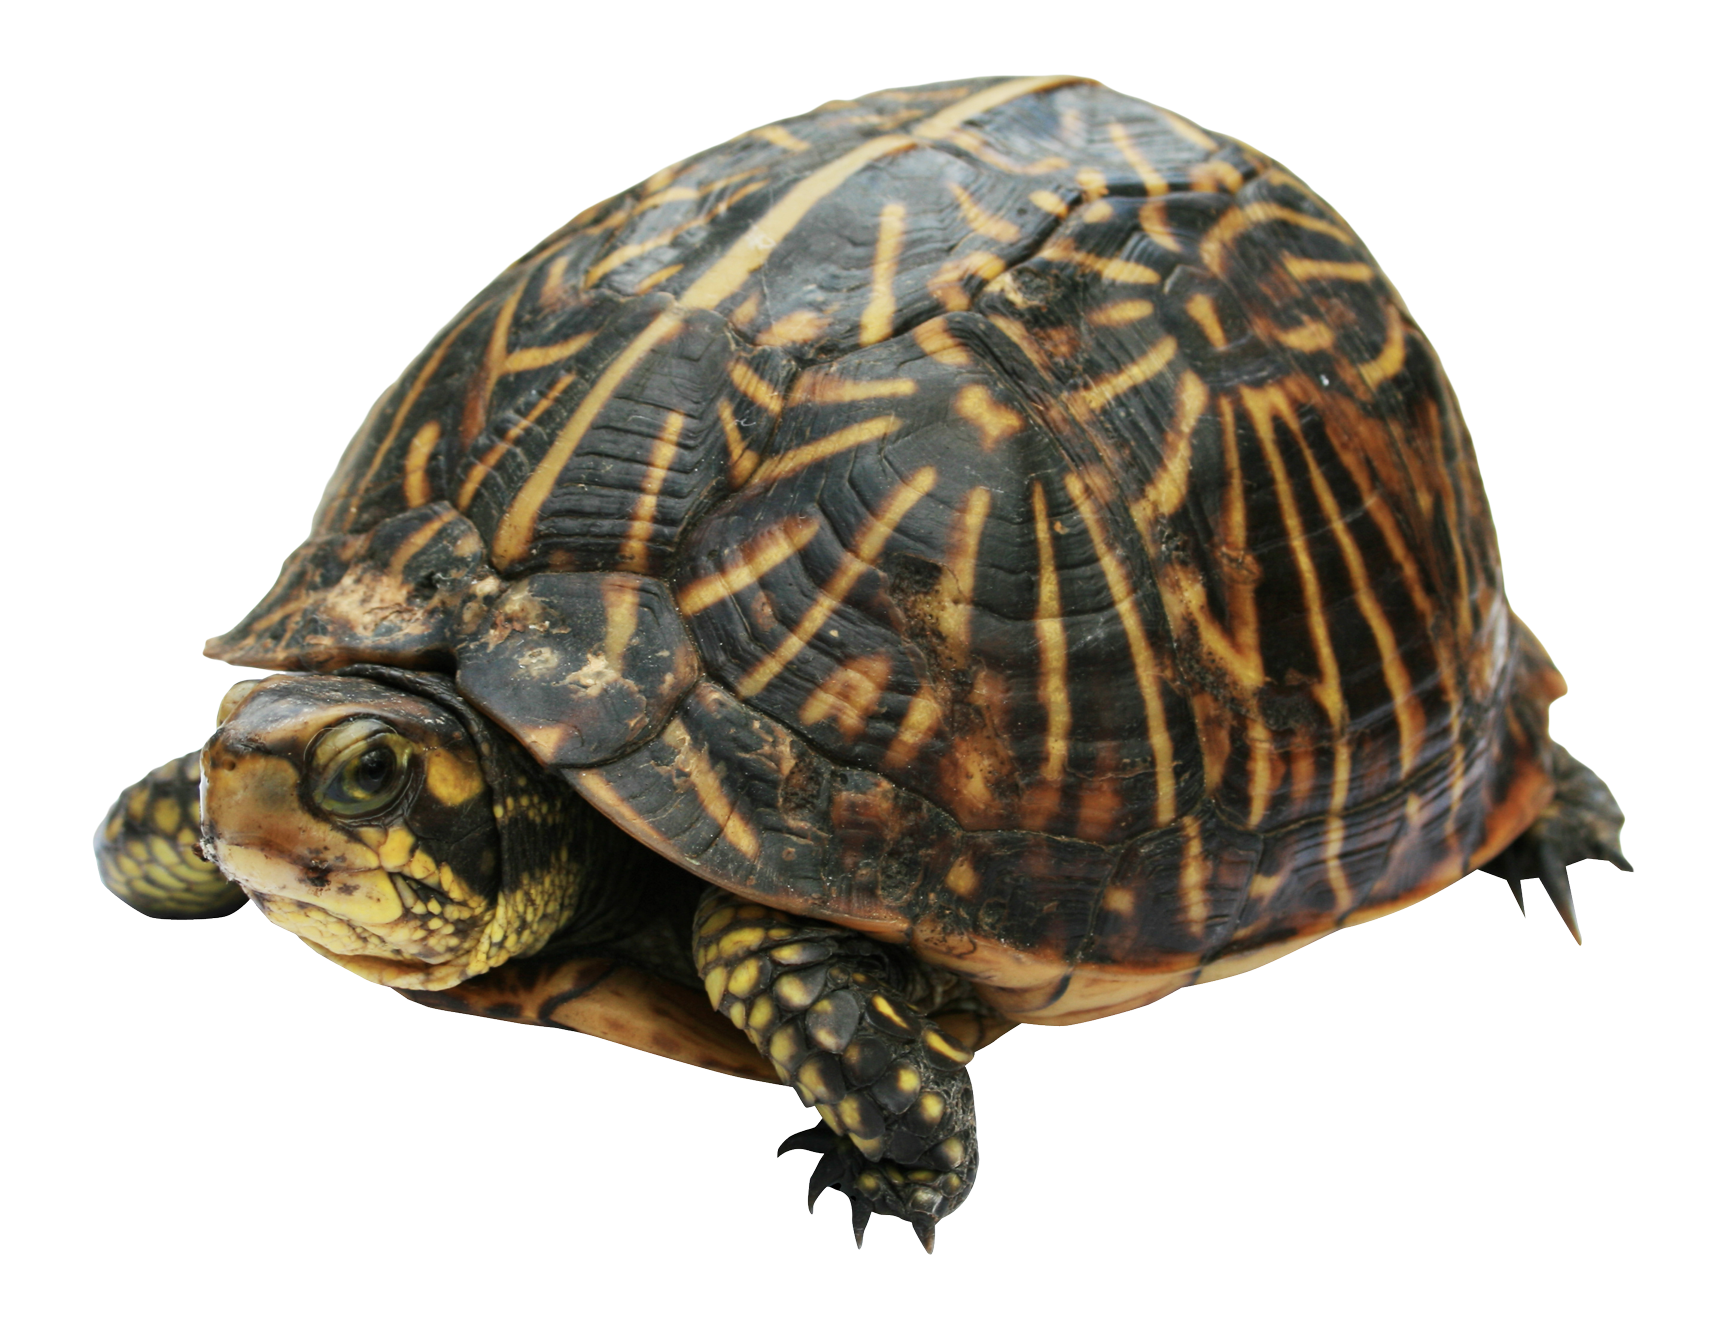 Turtle shell png. Image purepng free transparent